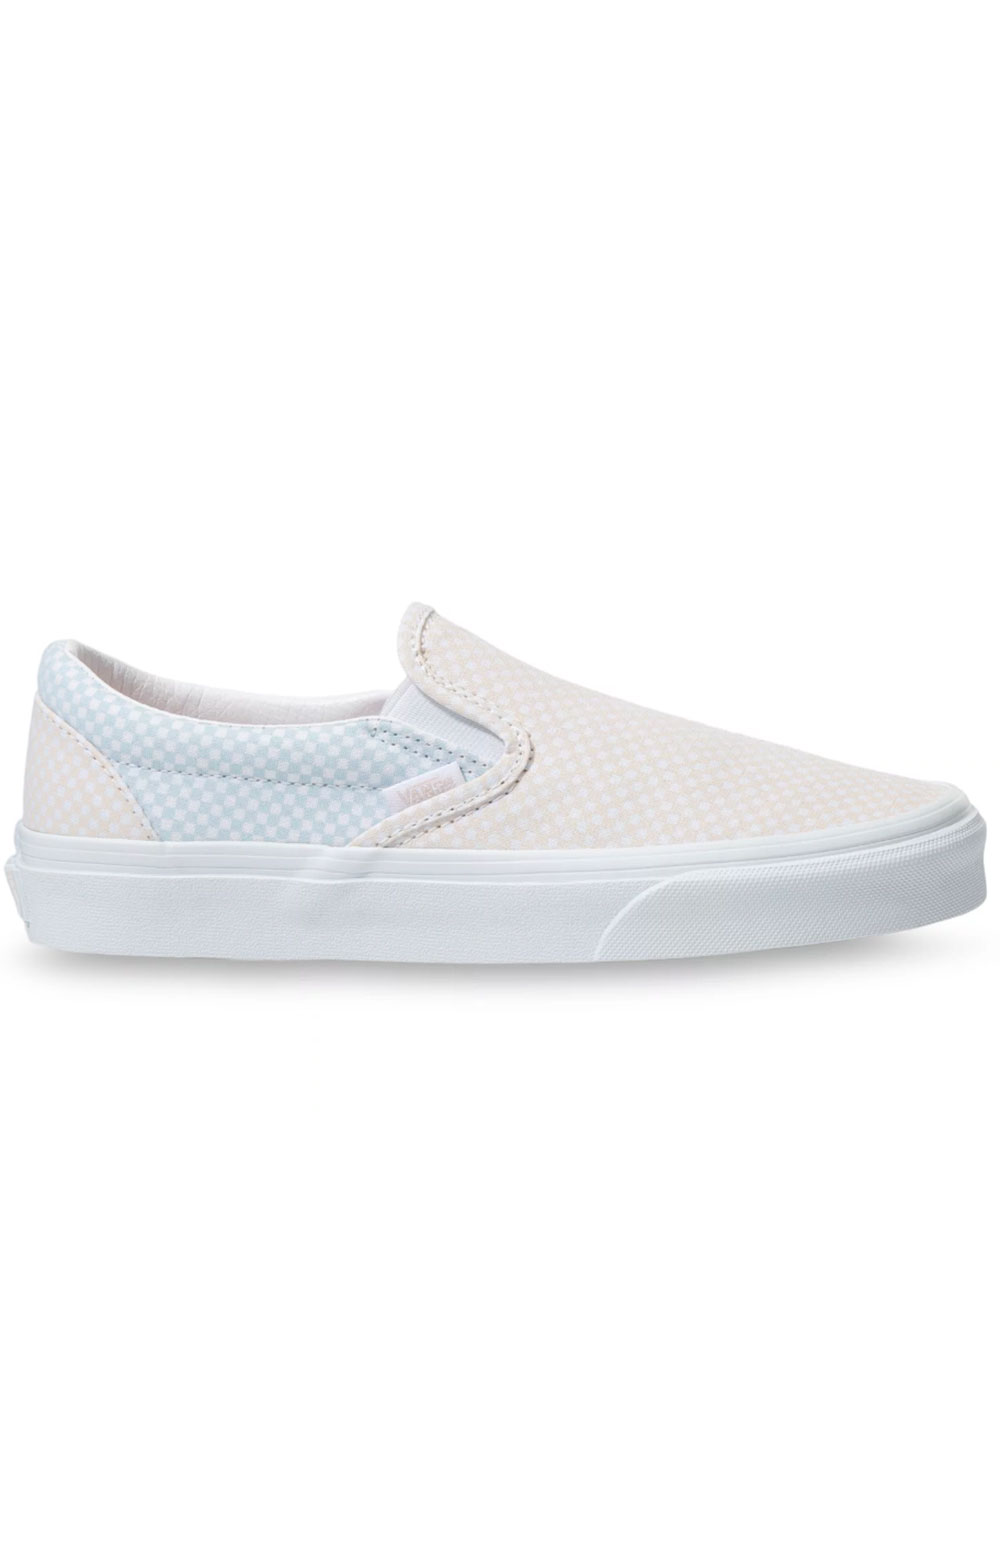 (3TB44A) Pastel Checkerboard Classic Slip-On Shoes - Misty Blue